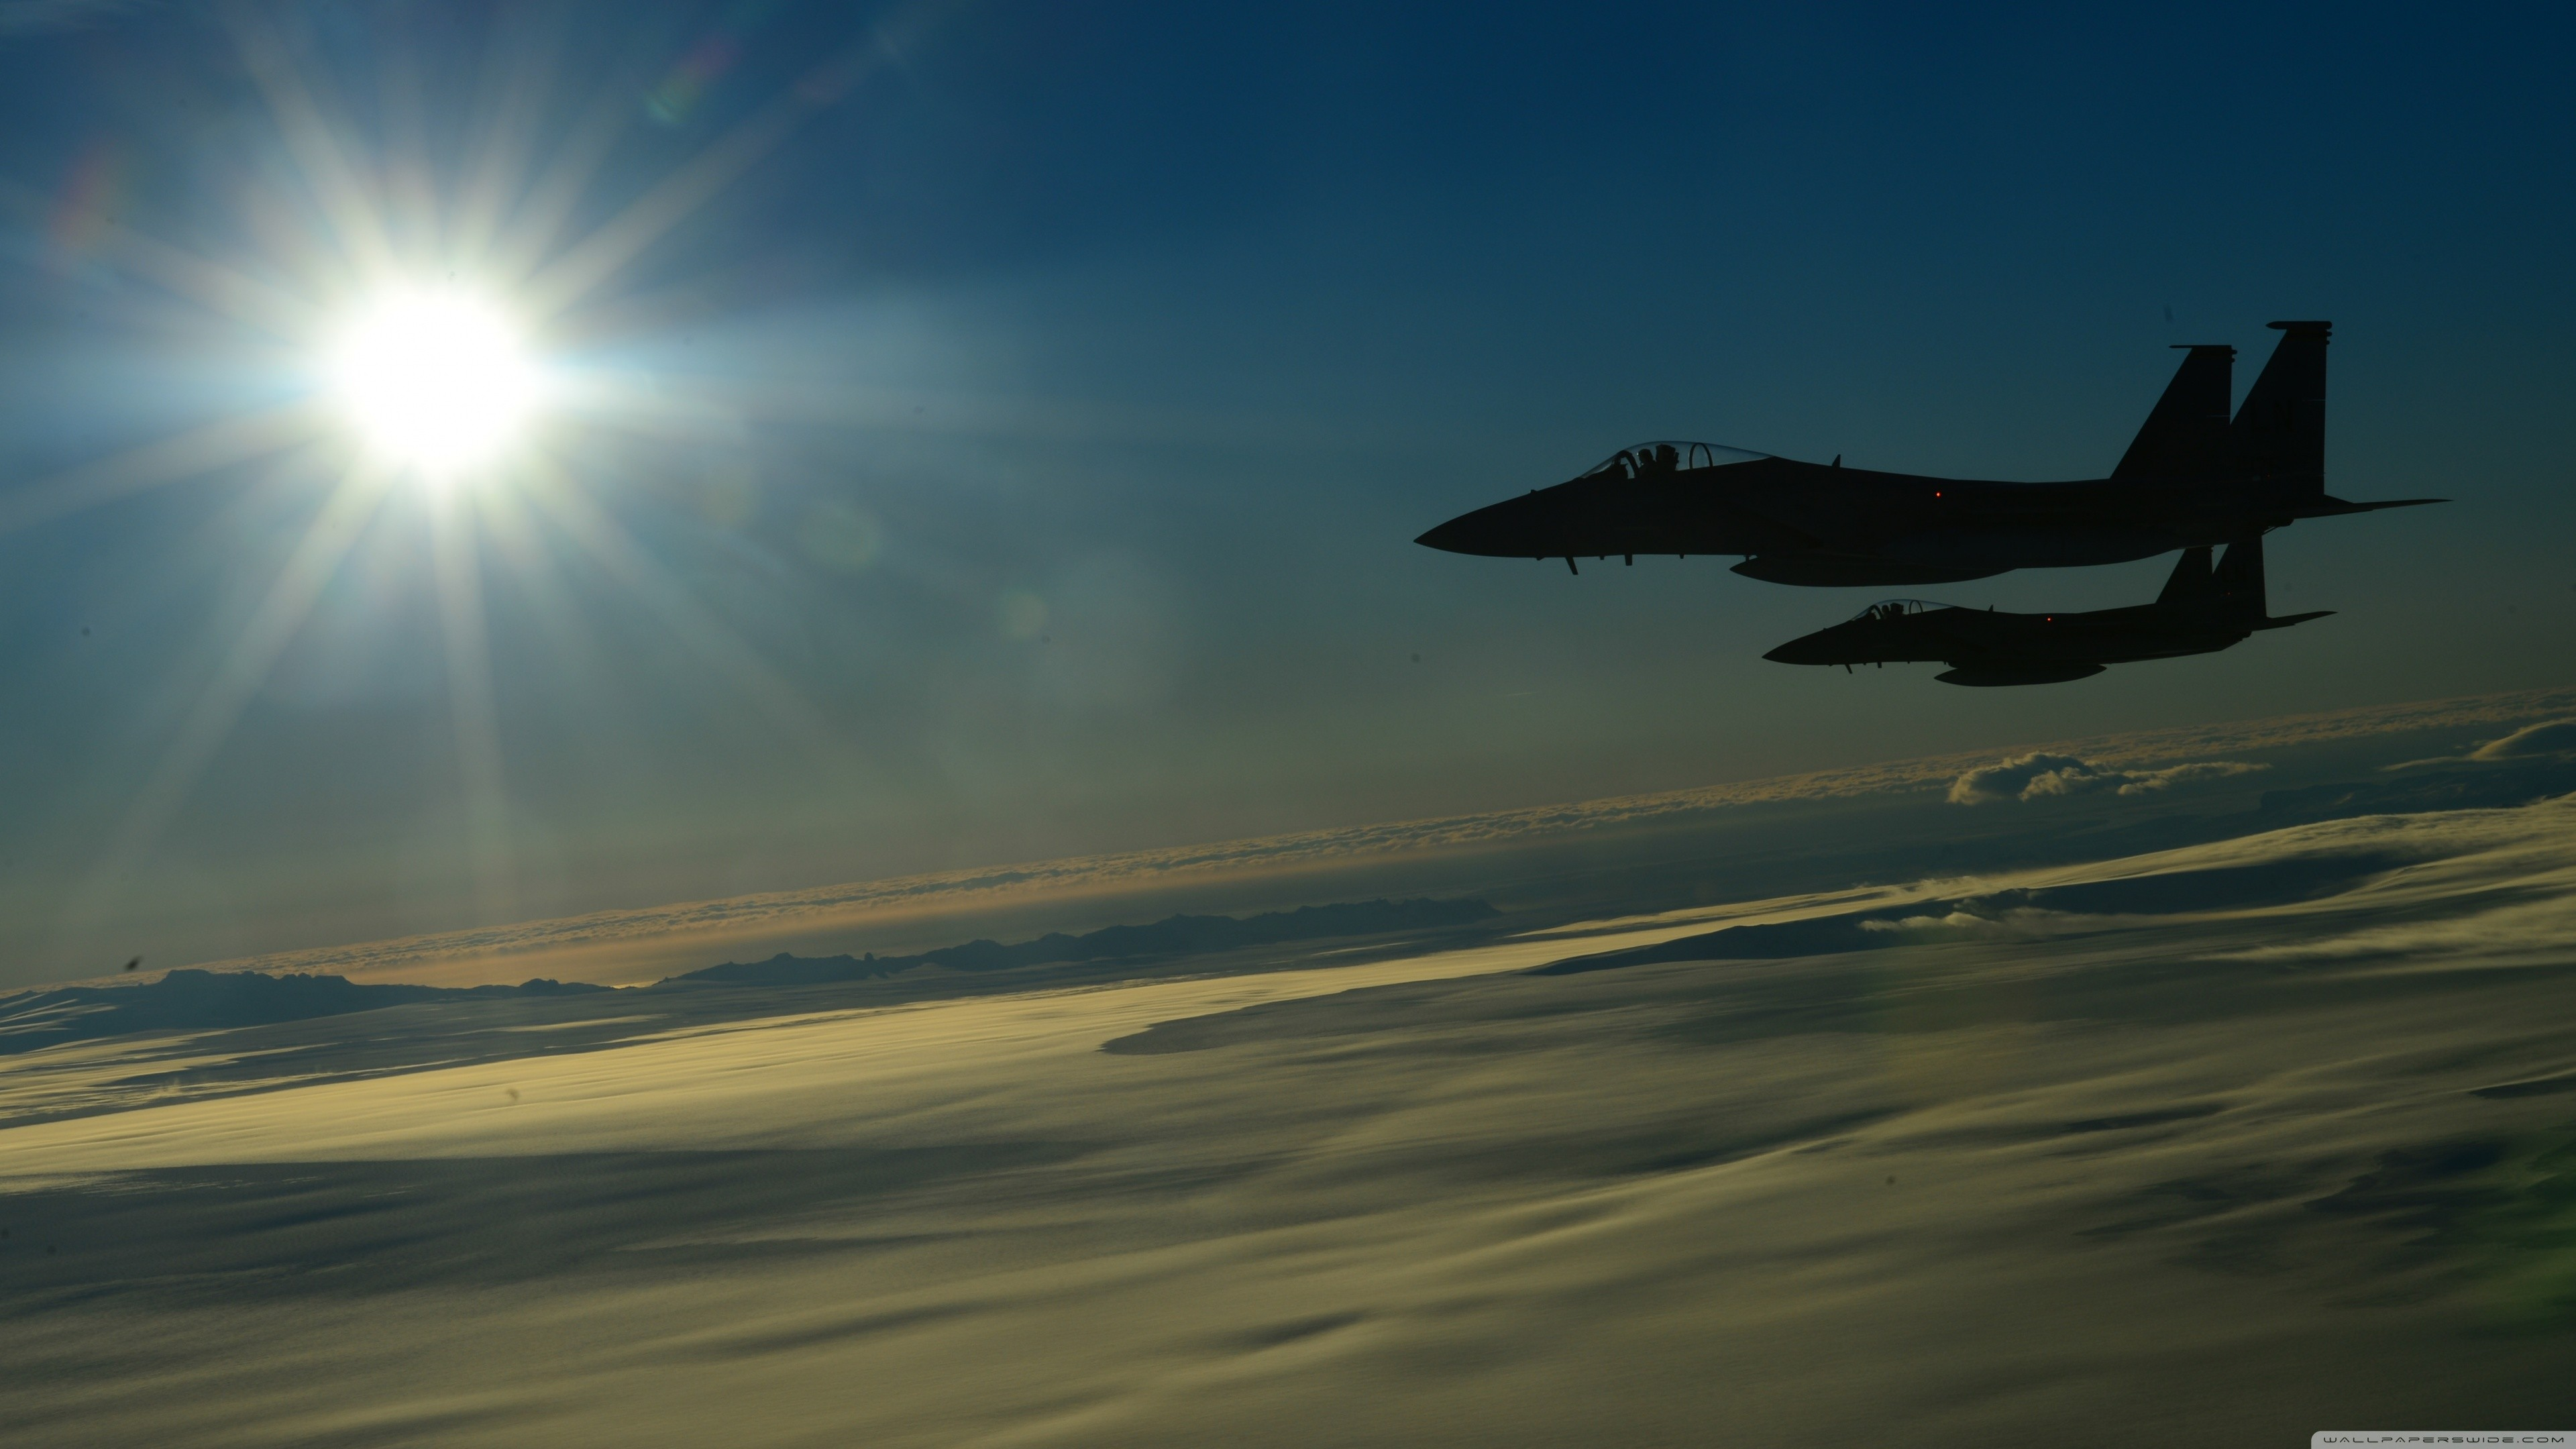 air force desktop wallpaper - photo #31